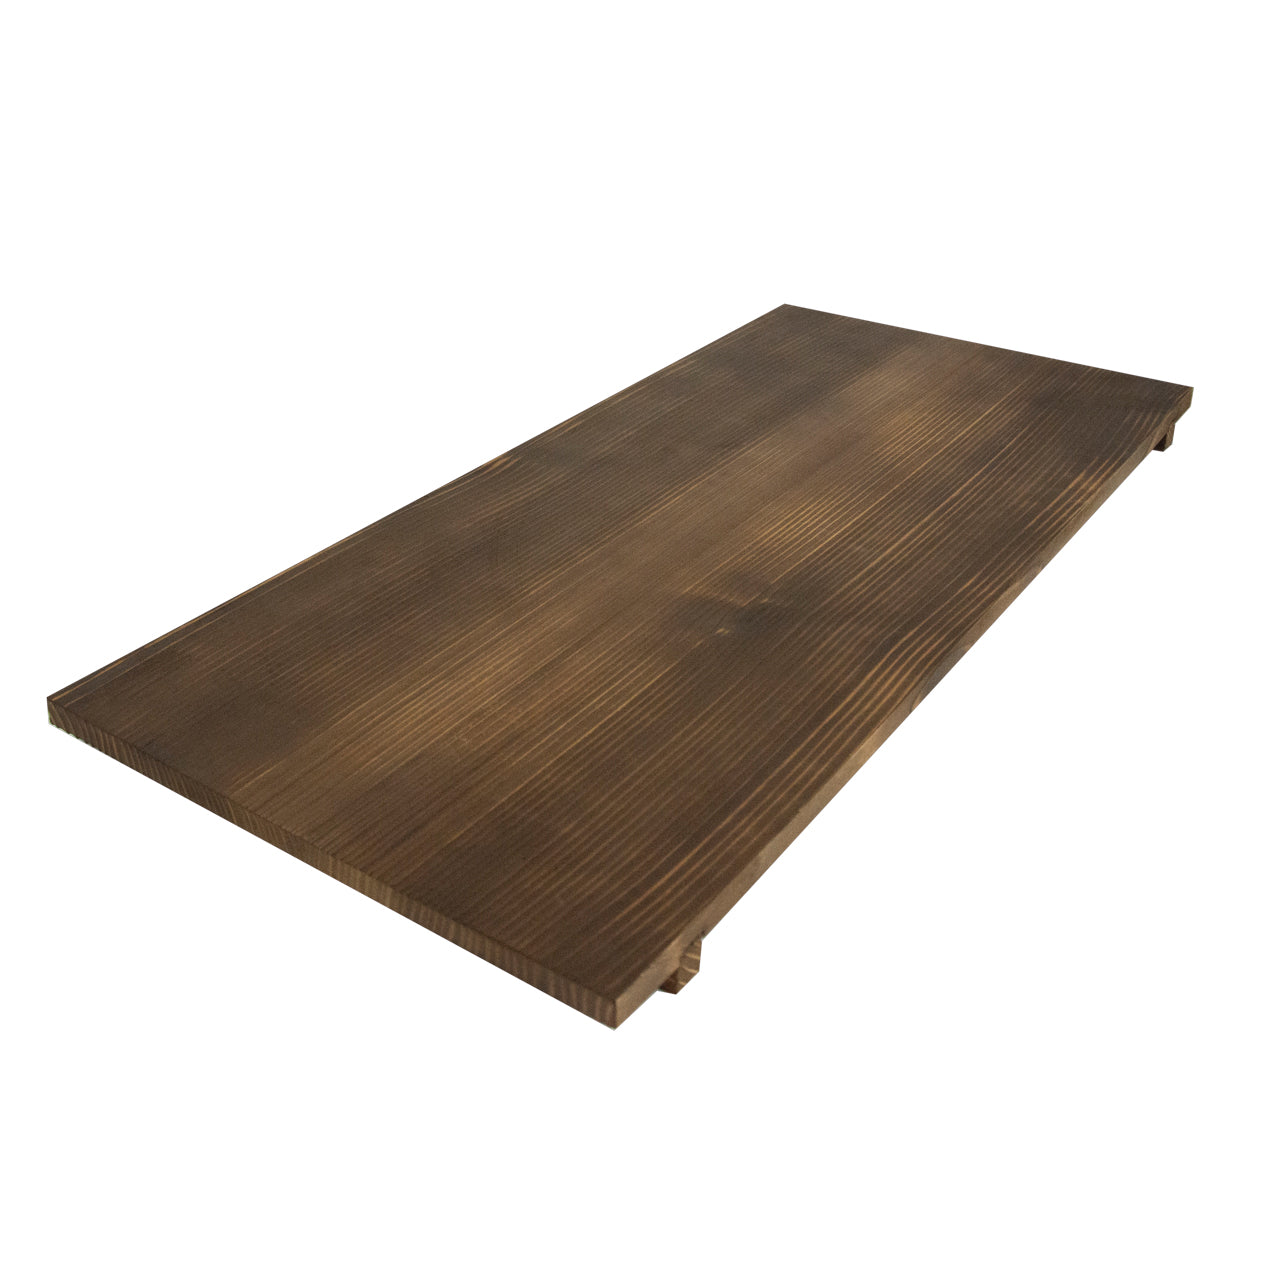 Base Board for Charcoal Grill (SKU: 3830)